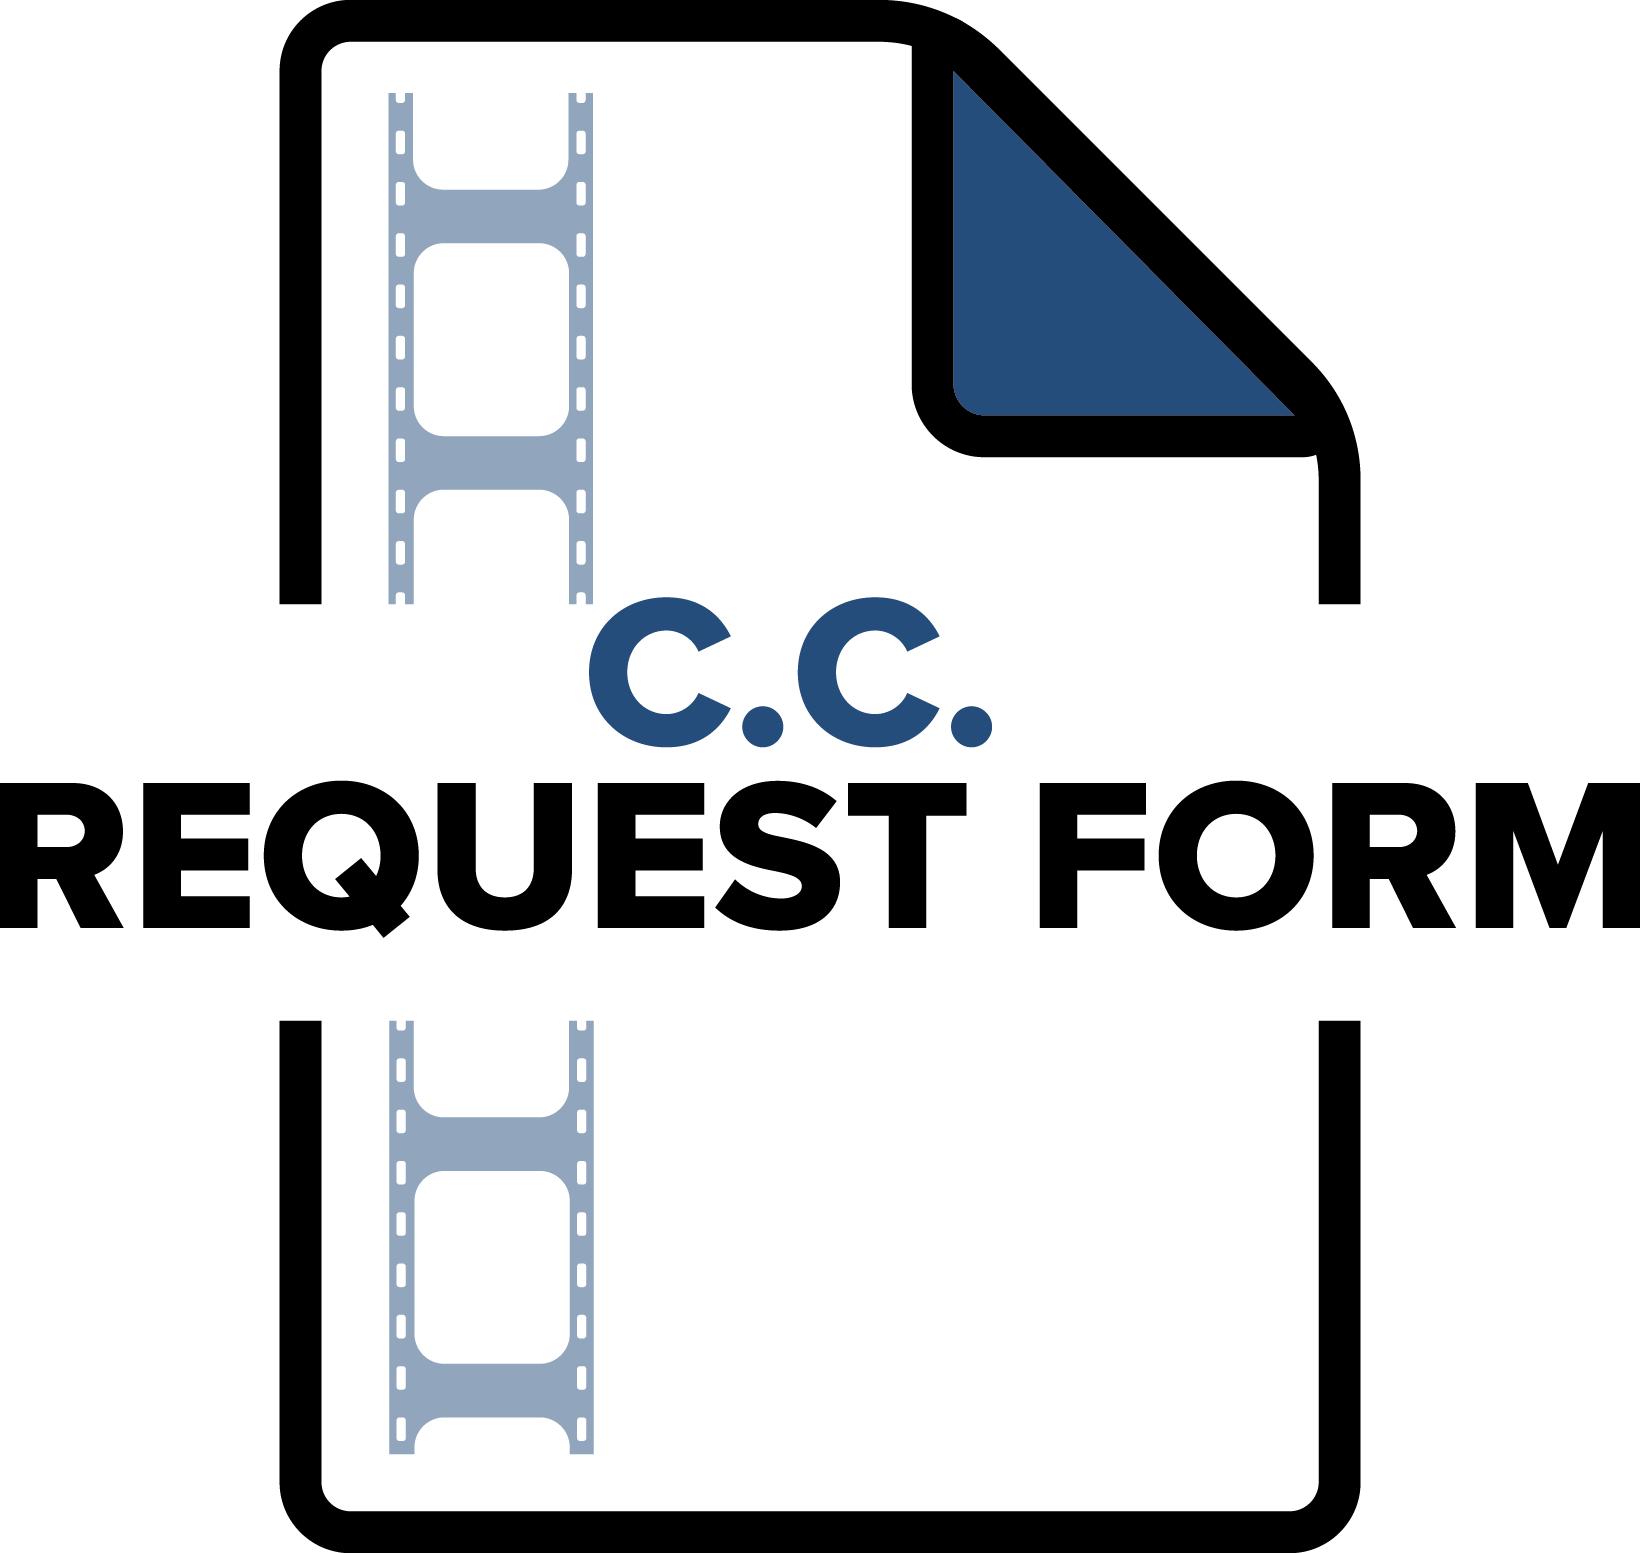 cc request form